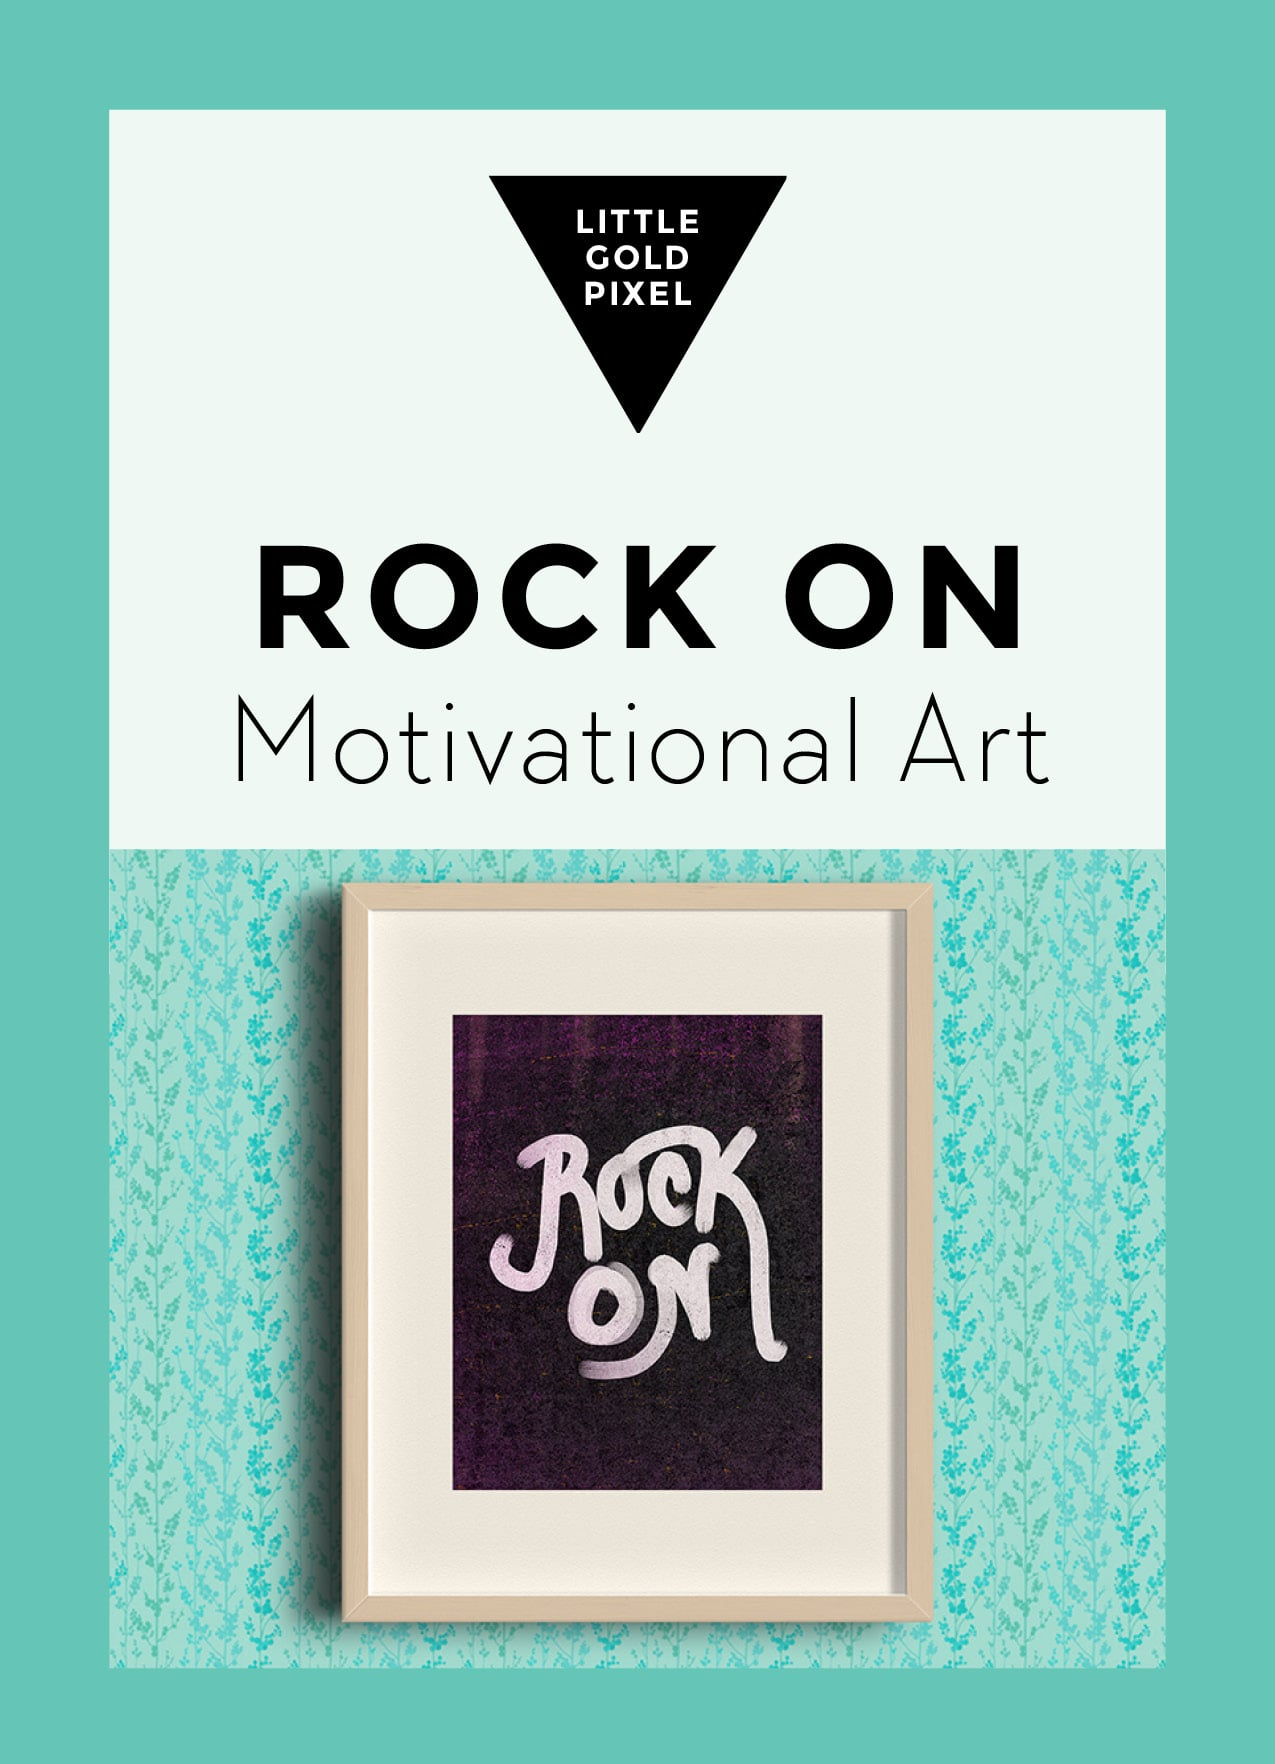 Art Printable Rock On With Your Bad Self • Little Gold Pixel